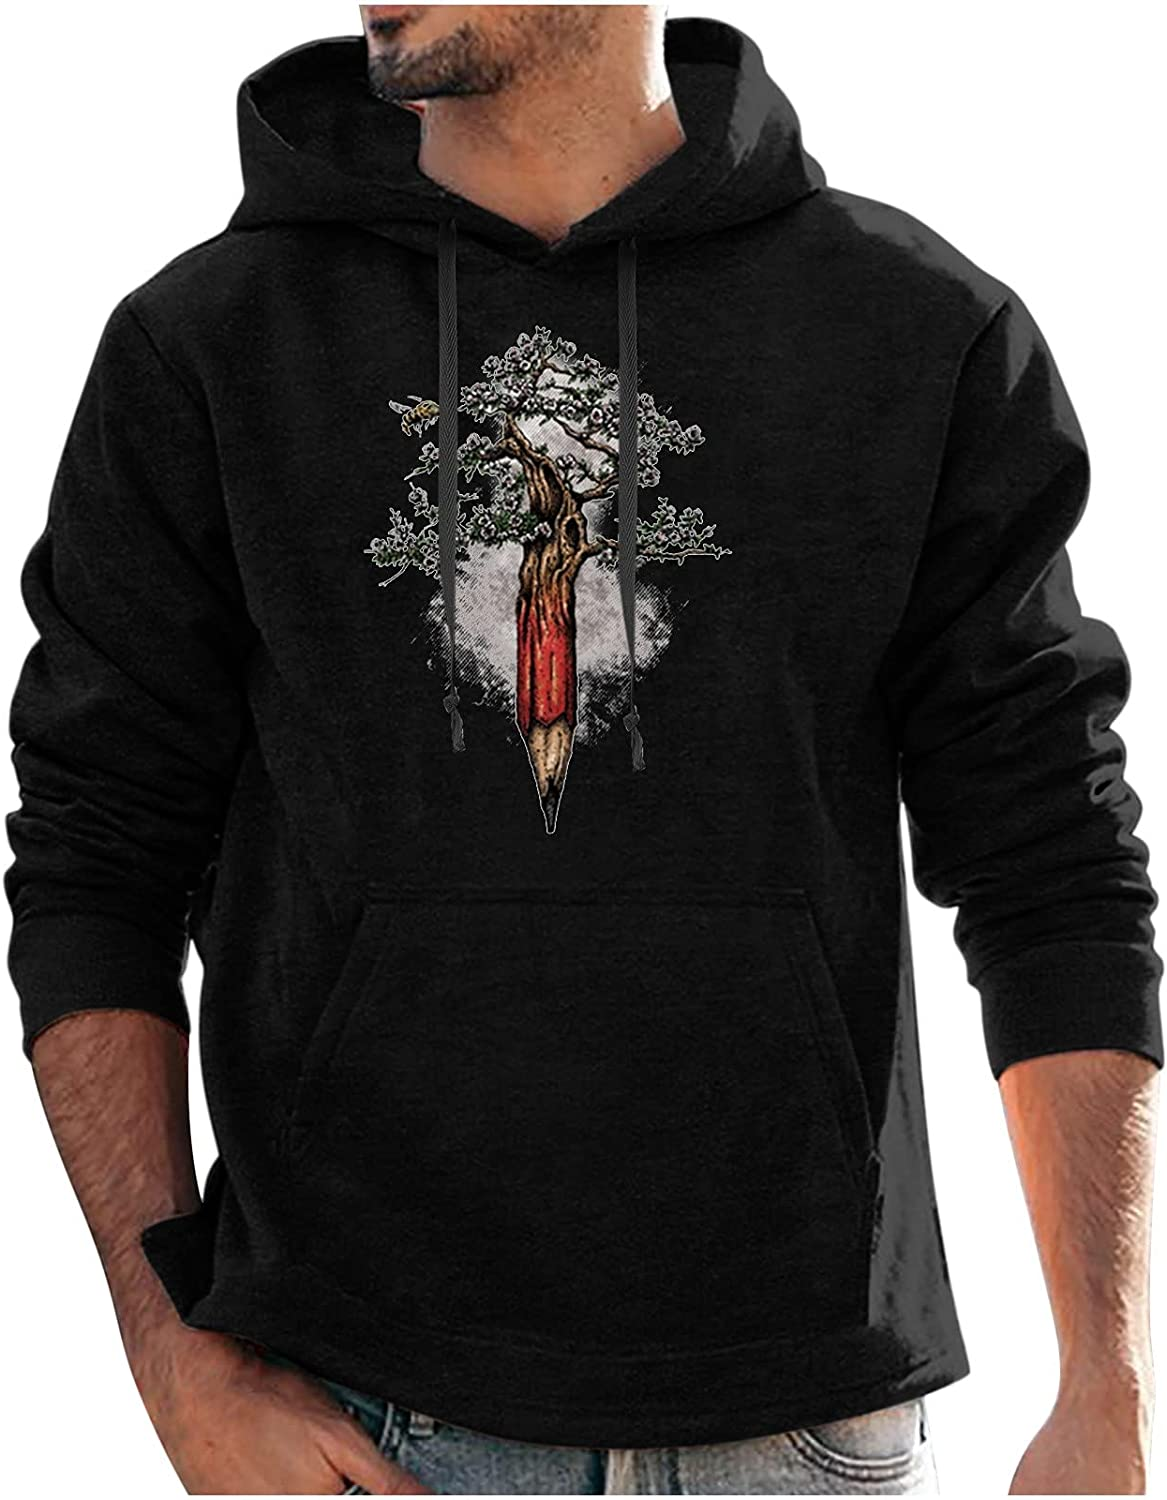 Graphic Pullover Hoodies for Men, Classic Fit Long Sleeve Hooded Sweater with Big Pocket